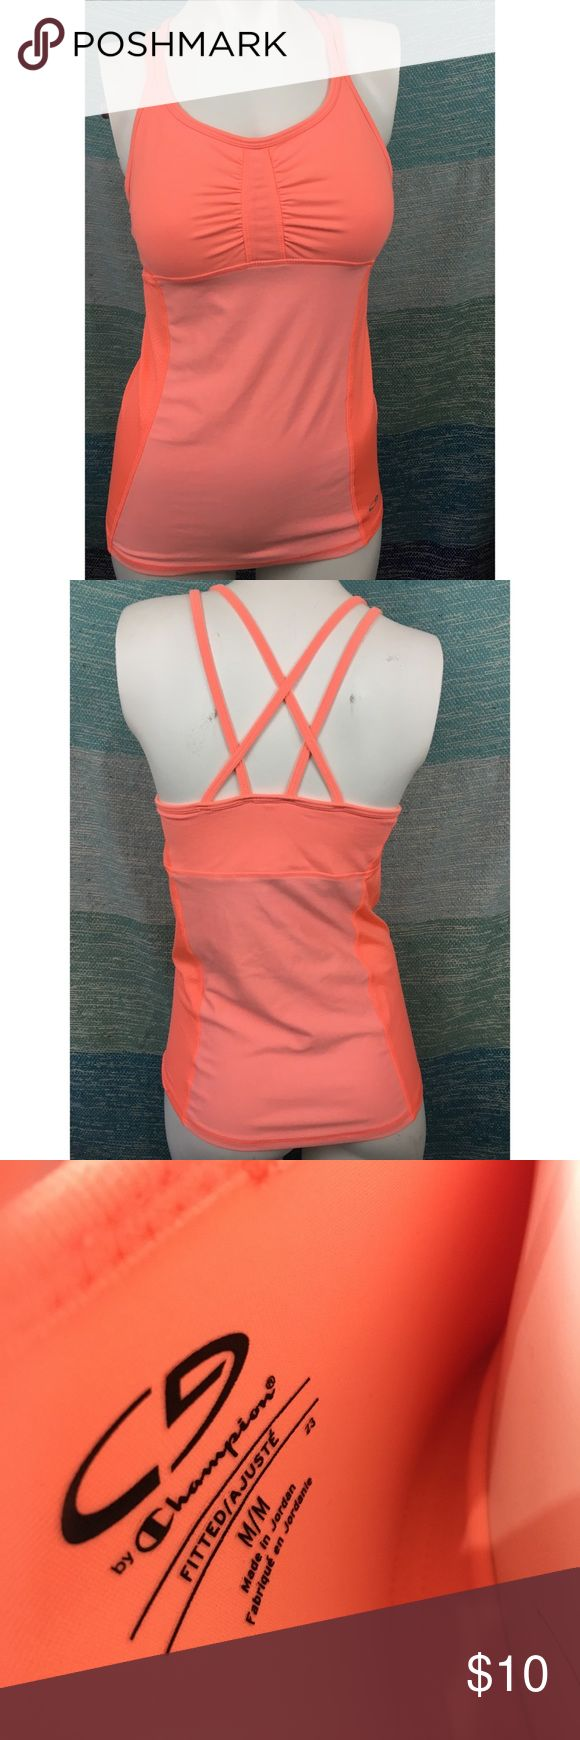 Champion Orange Strappy Workout Tank Top Shirt Excellent used condition, without flaws. Built in bra. Cute Strappy back. Champion Tops Tank Tops